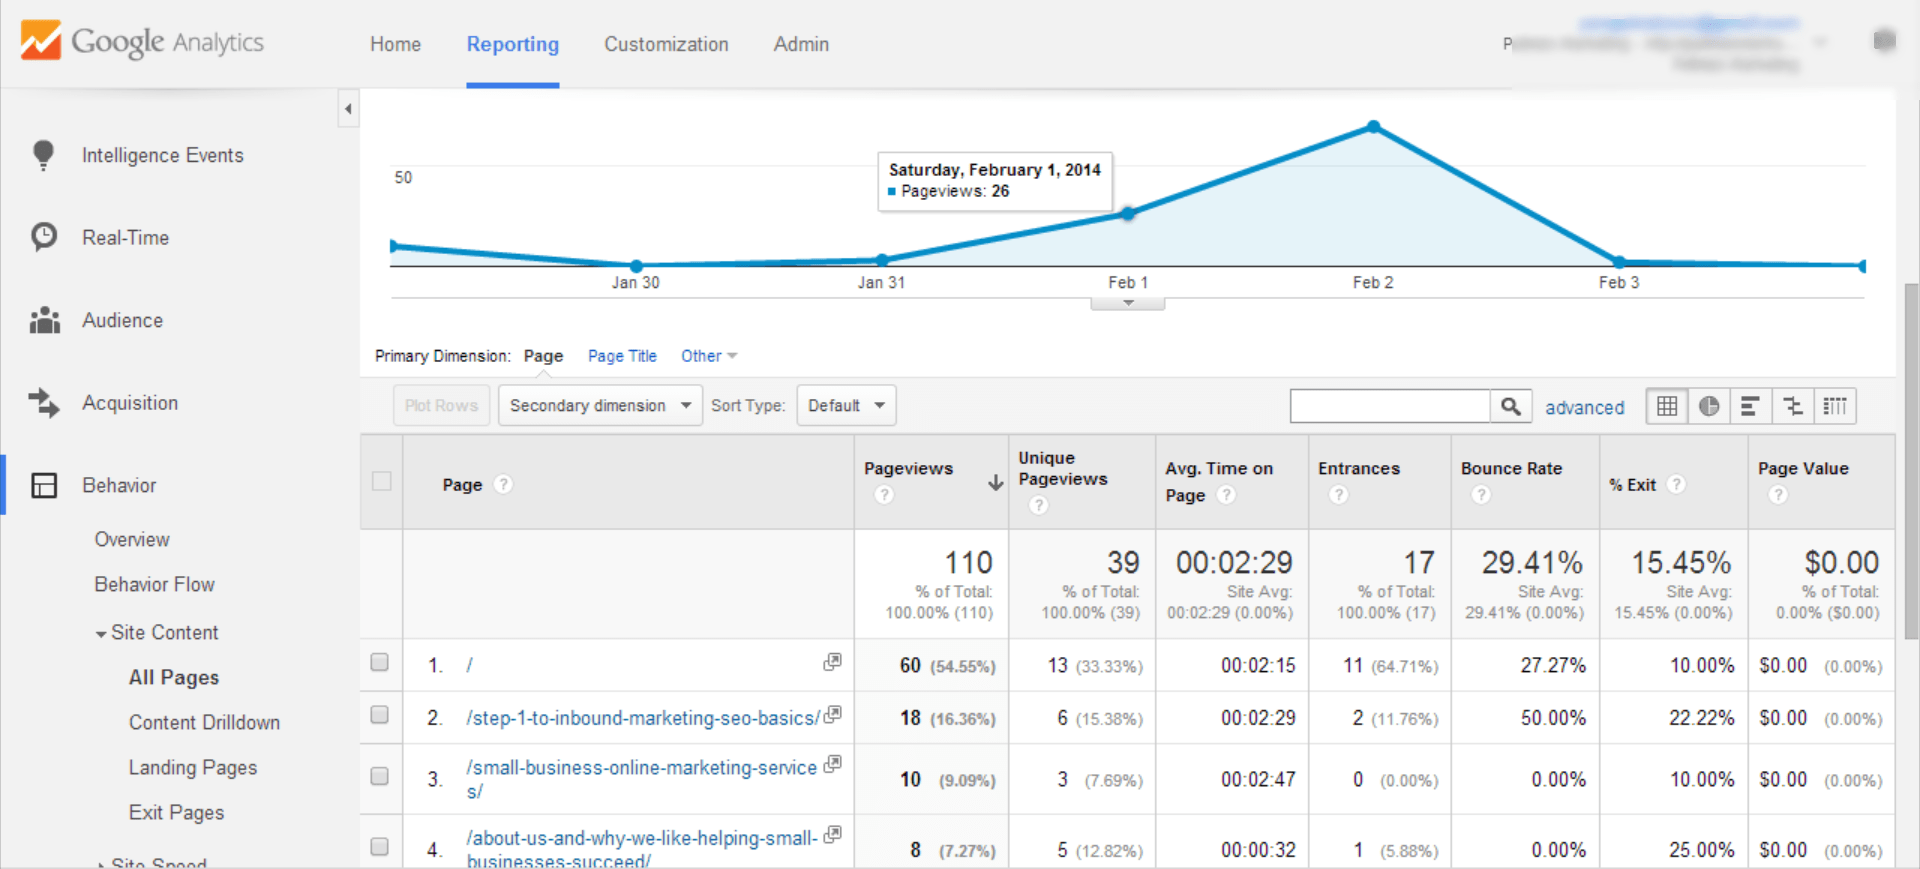 Google Analytics for Inbound Marketing | Pullman Marketing